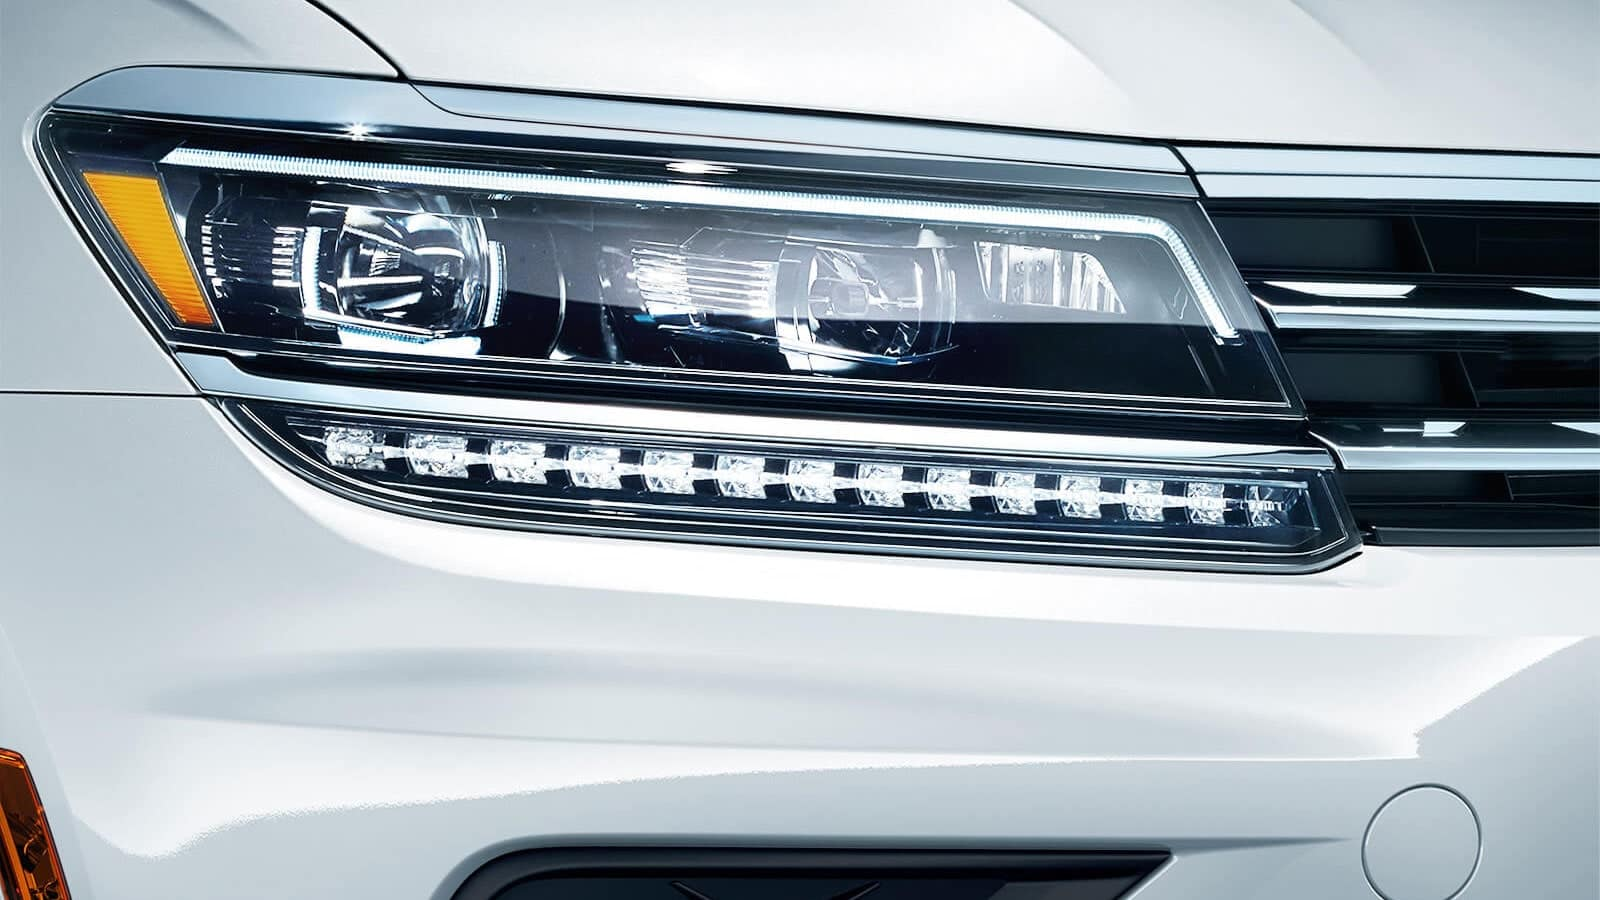 tiguan-feature-led-lights